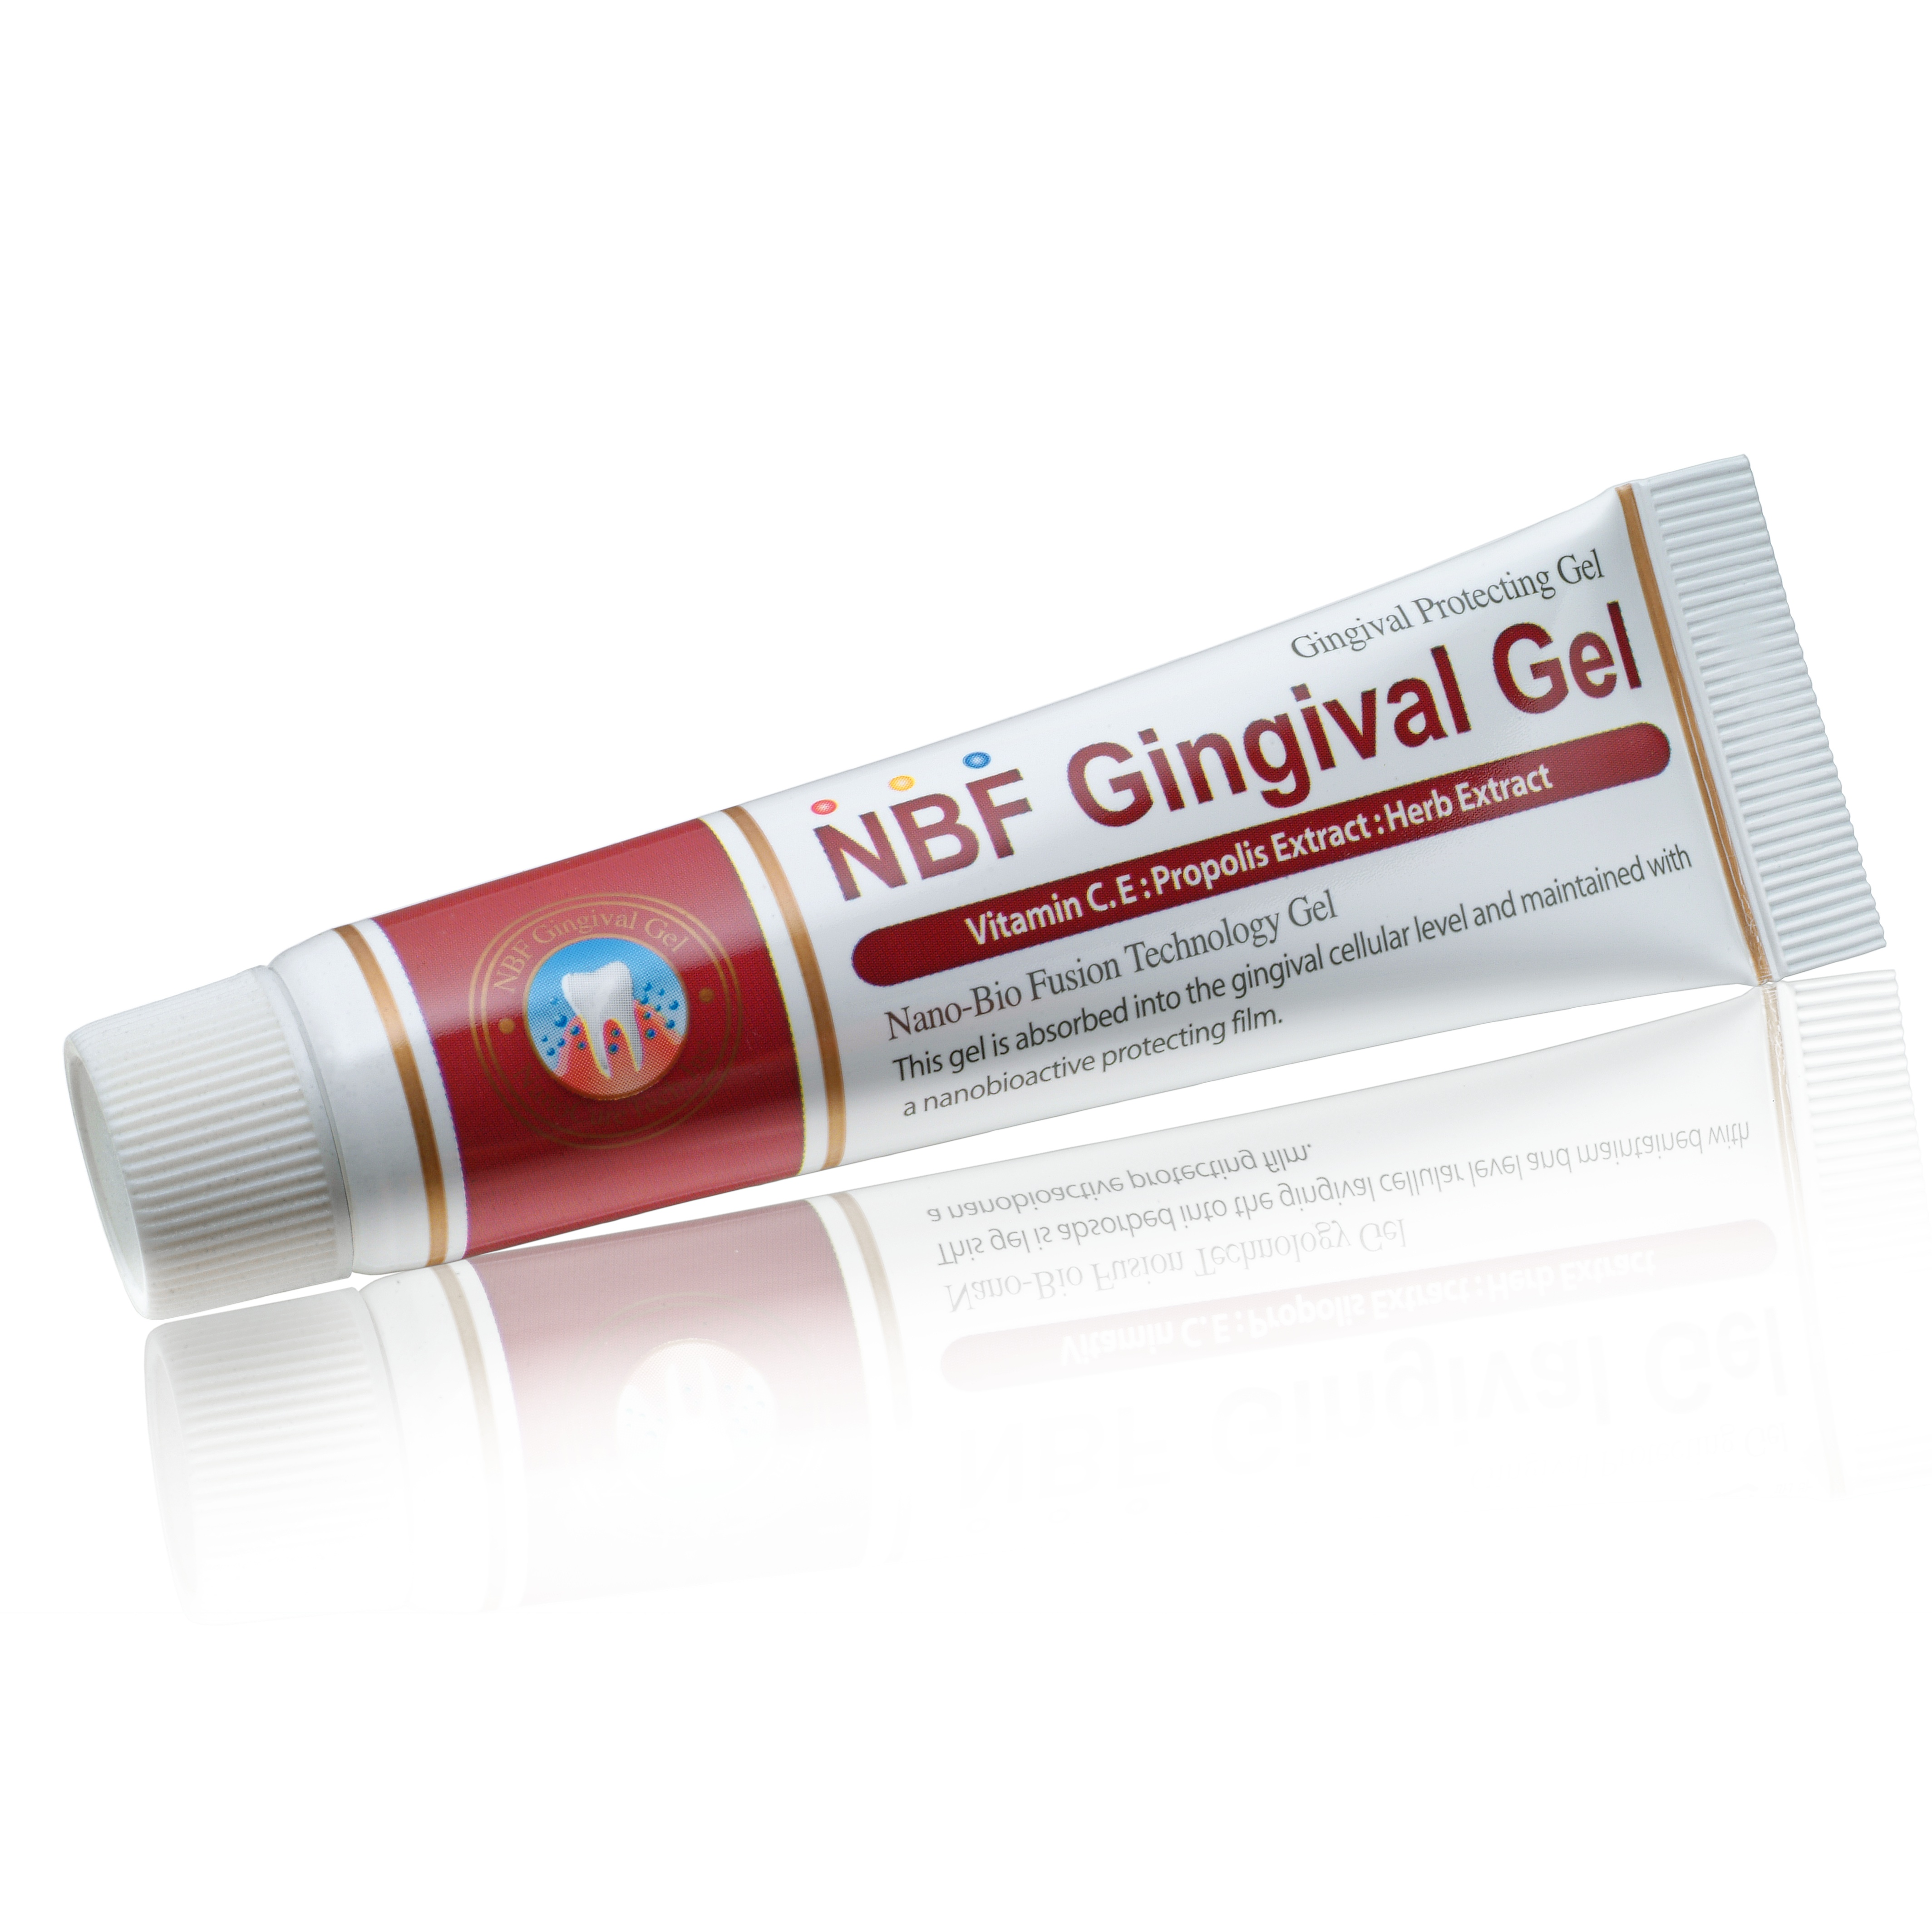 NBF Gingival Gel